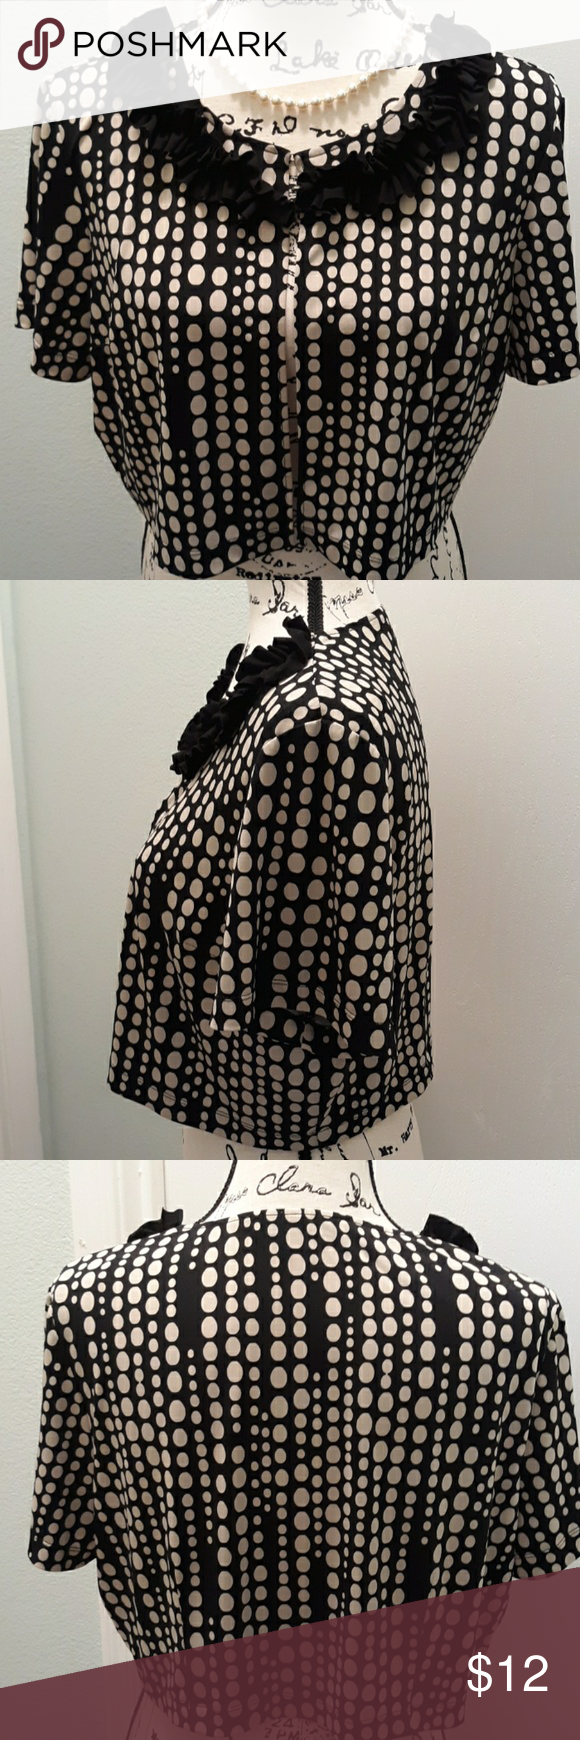 Danny and Nicole dress jacket size 14 Danny and Nicole dress jacket size 14 Cute black and dark cream polka dot jacket Perfect over a black dress Came with a dress (lost in the move) Accented with a ruffle neckline Features hook and clasp front closure 95% polyester 5% spandex B: 40-42  W: 40 L: 15  #0137 Danny & Nicole Jackets & Coats Blazers